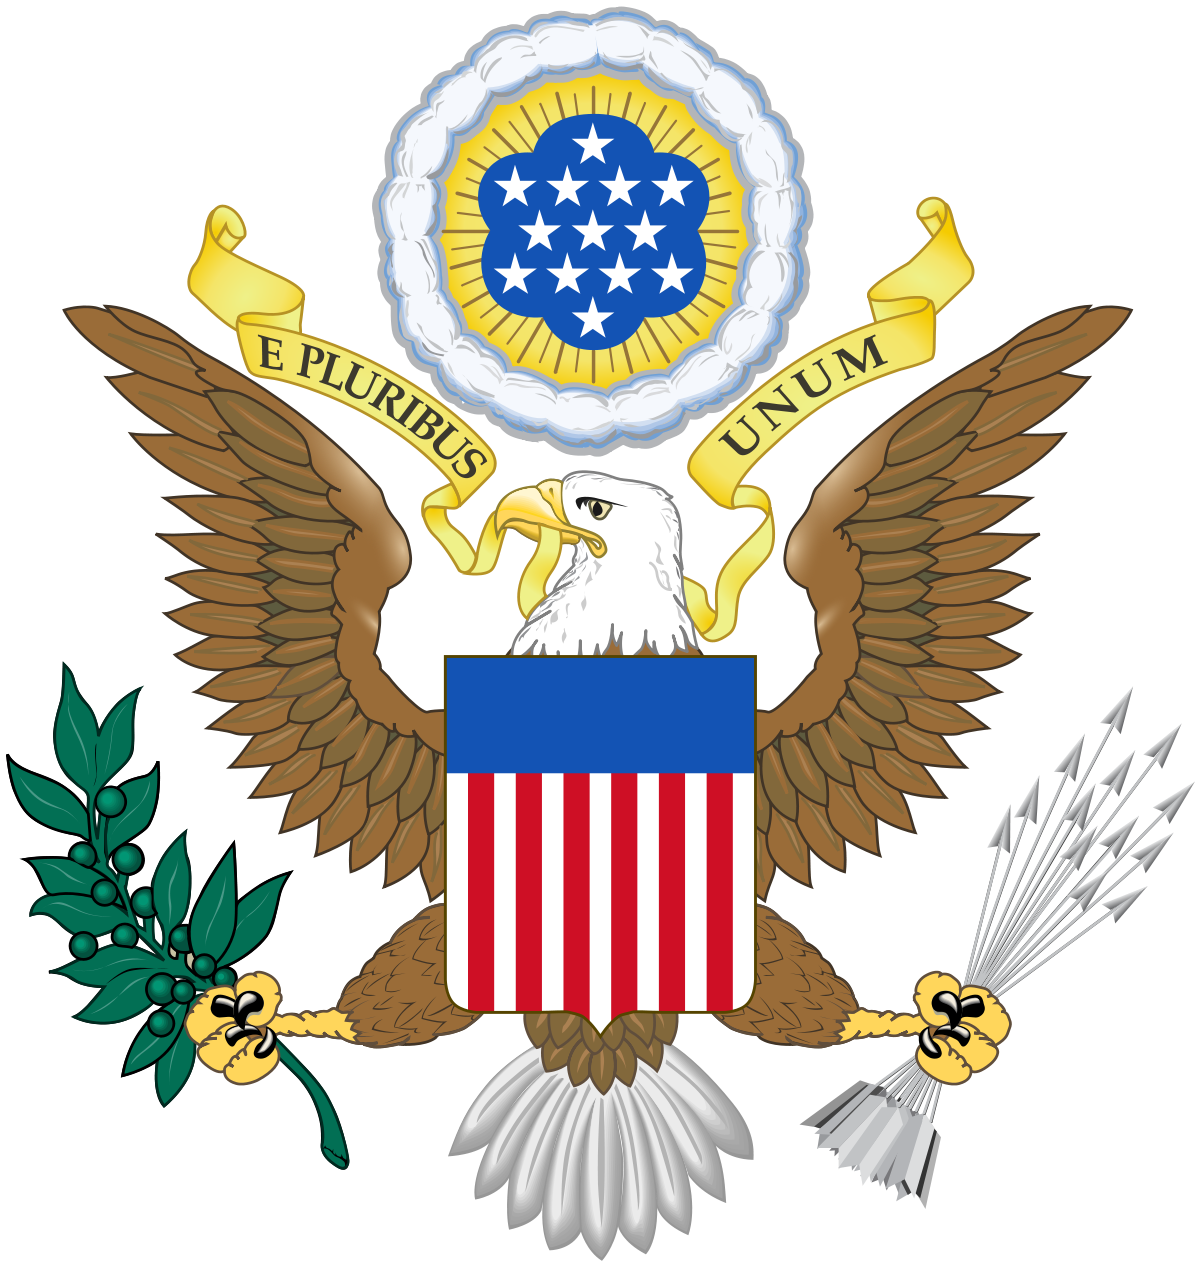 Role of local level government in clipart clipart freeuse Twenty-second Amendment to the United States Constitution - Wikipedia clipart freeuse